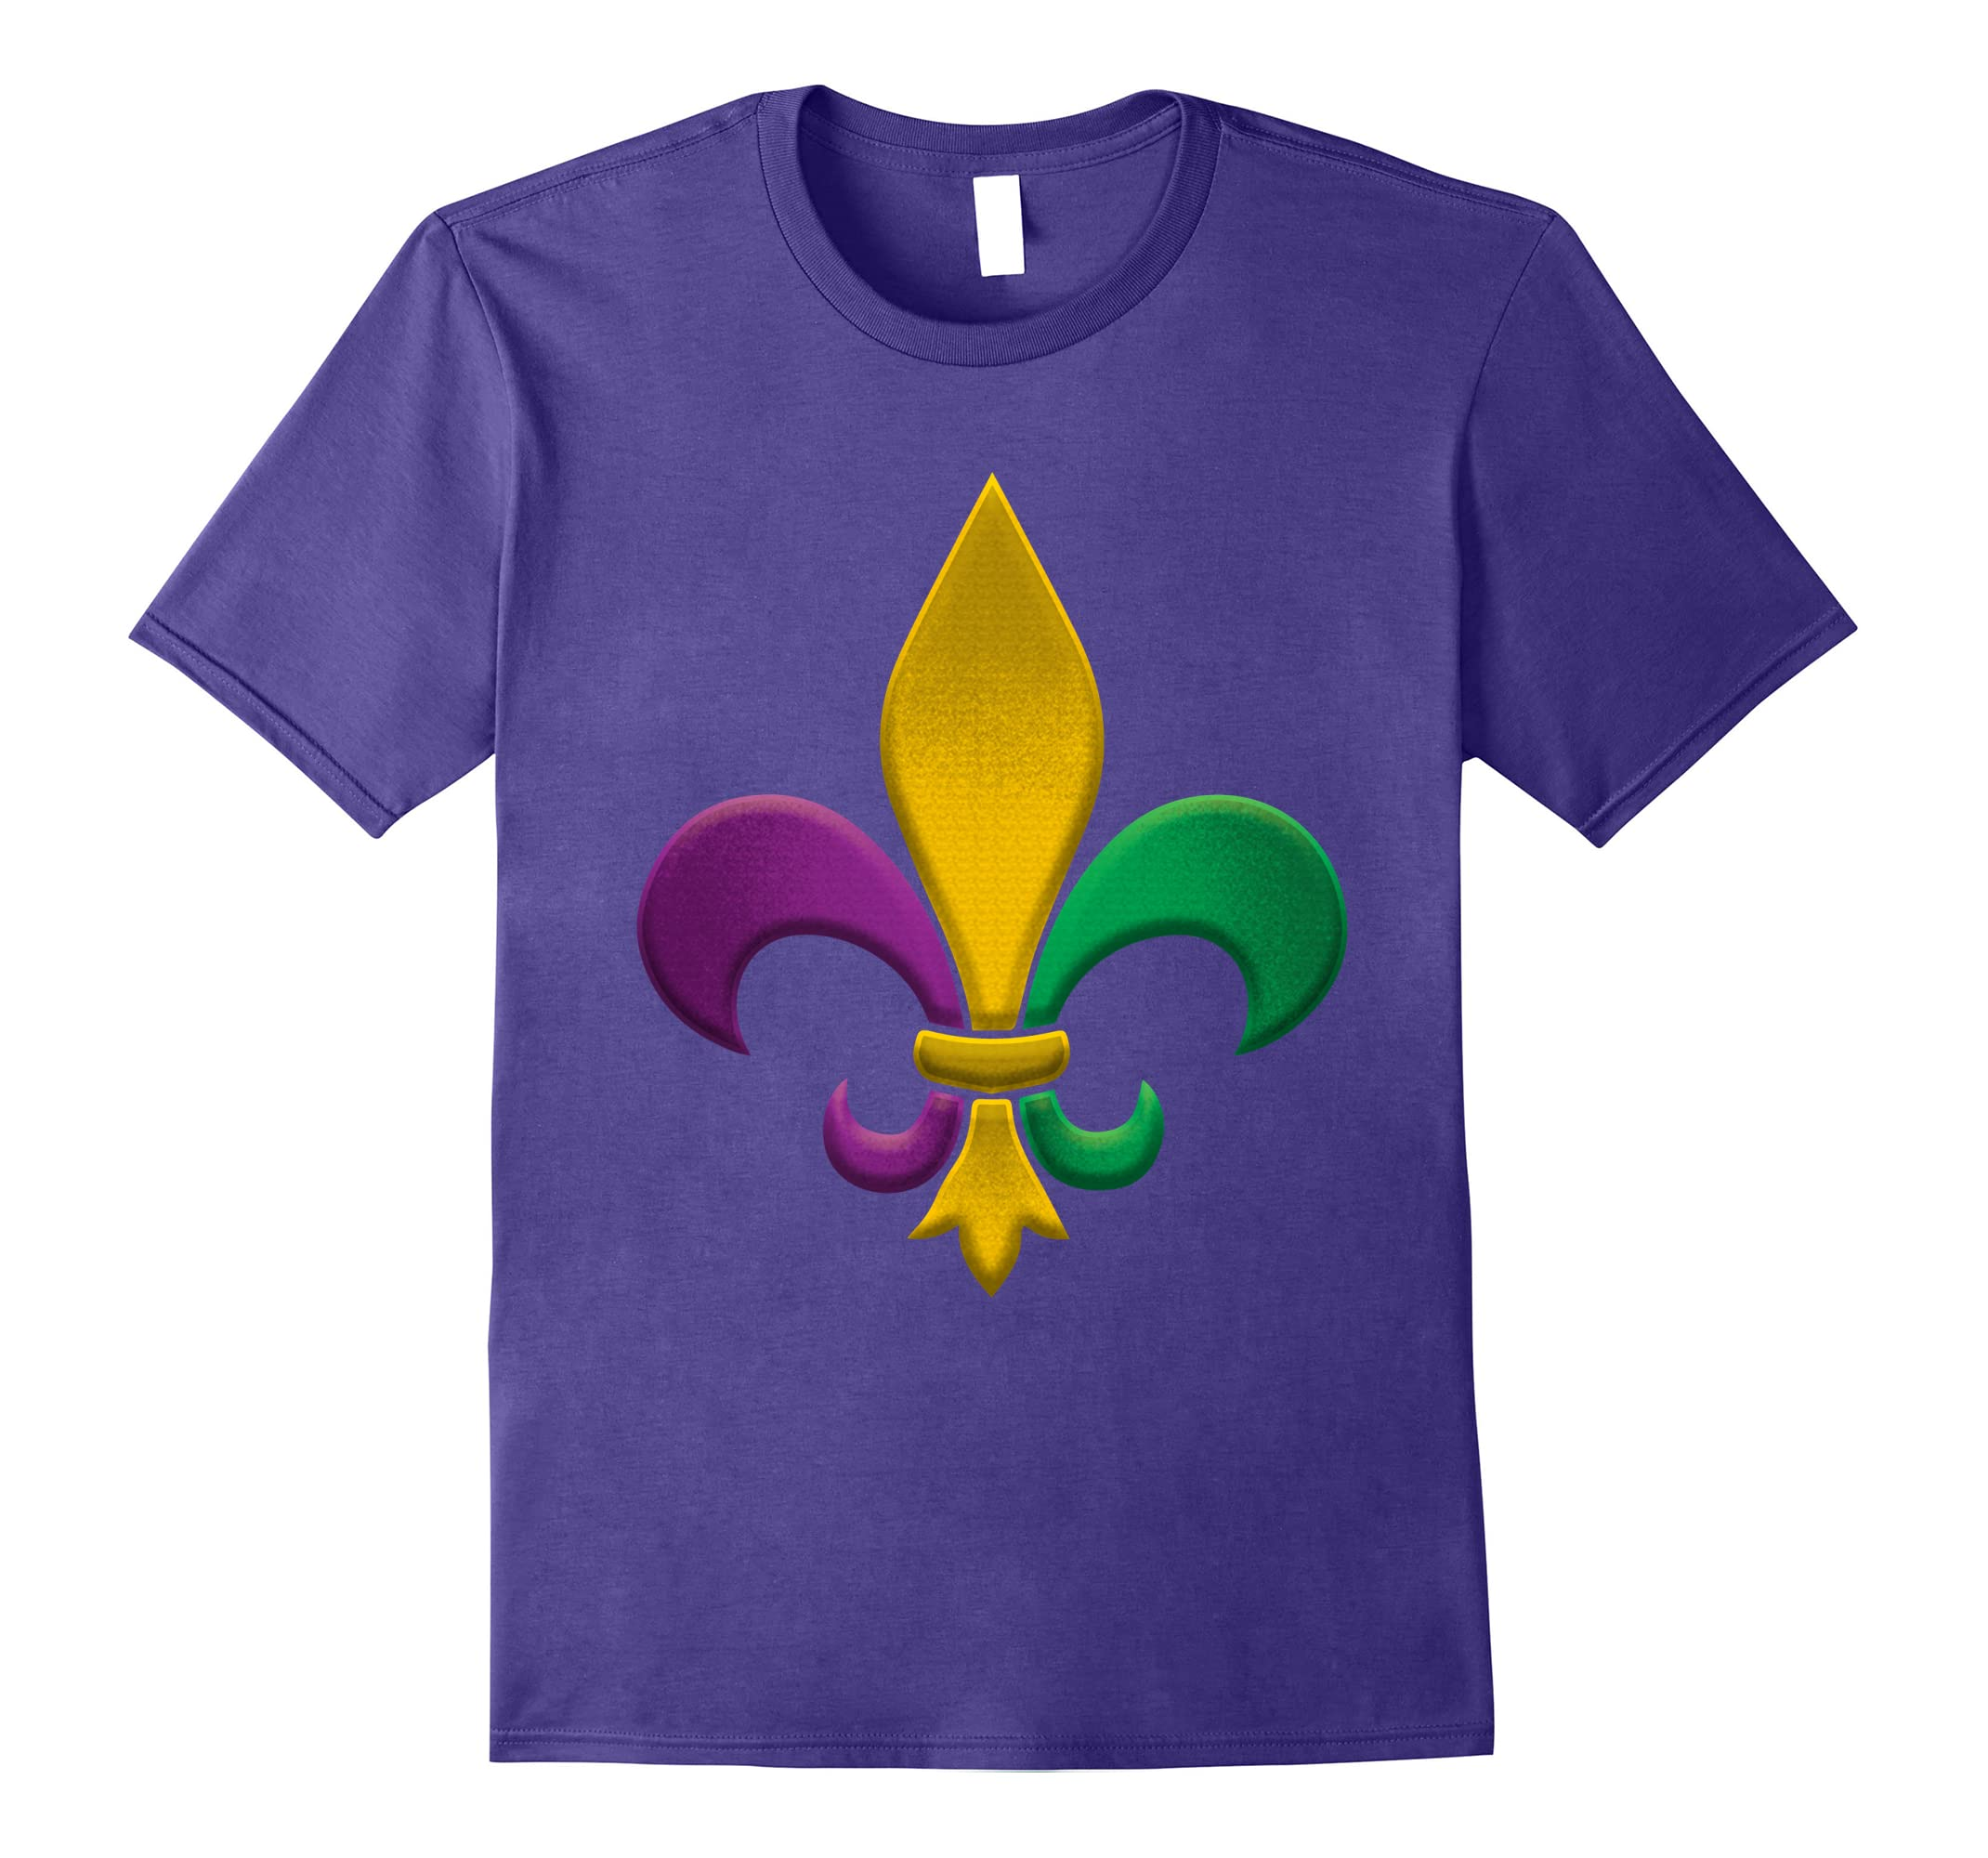 Awesome Mardi Gras Fleur De Lis Shirt New Orleans Party Idea-ah my shirt one gift